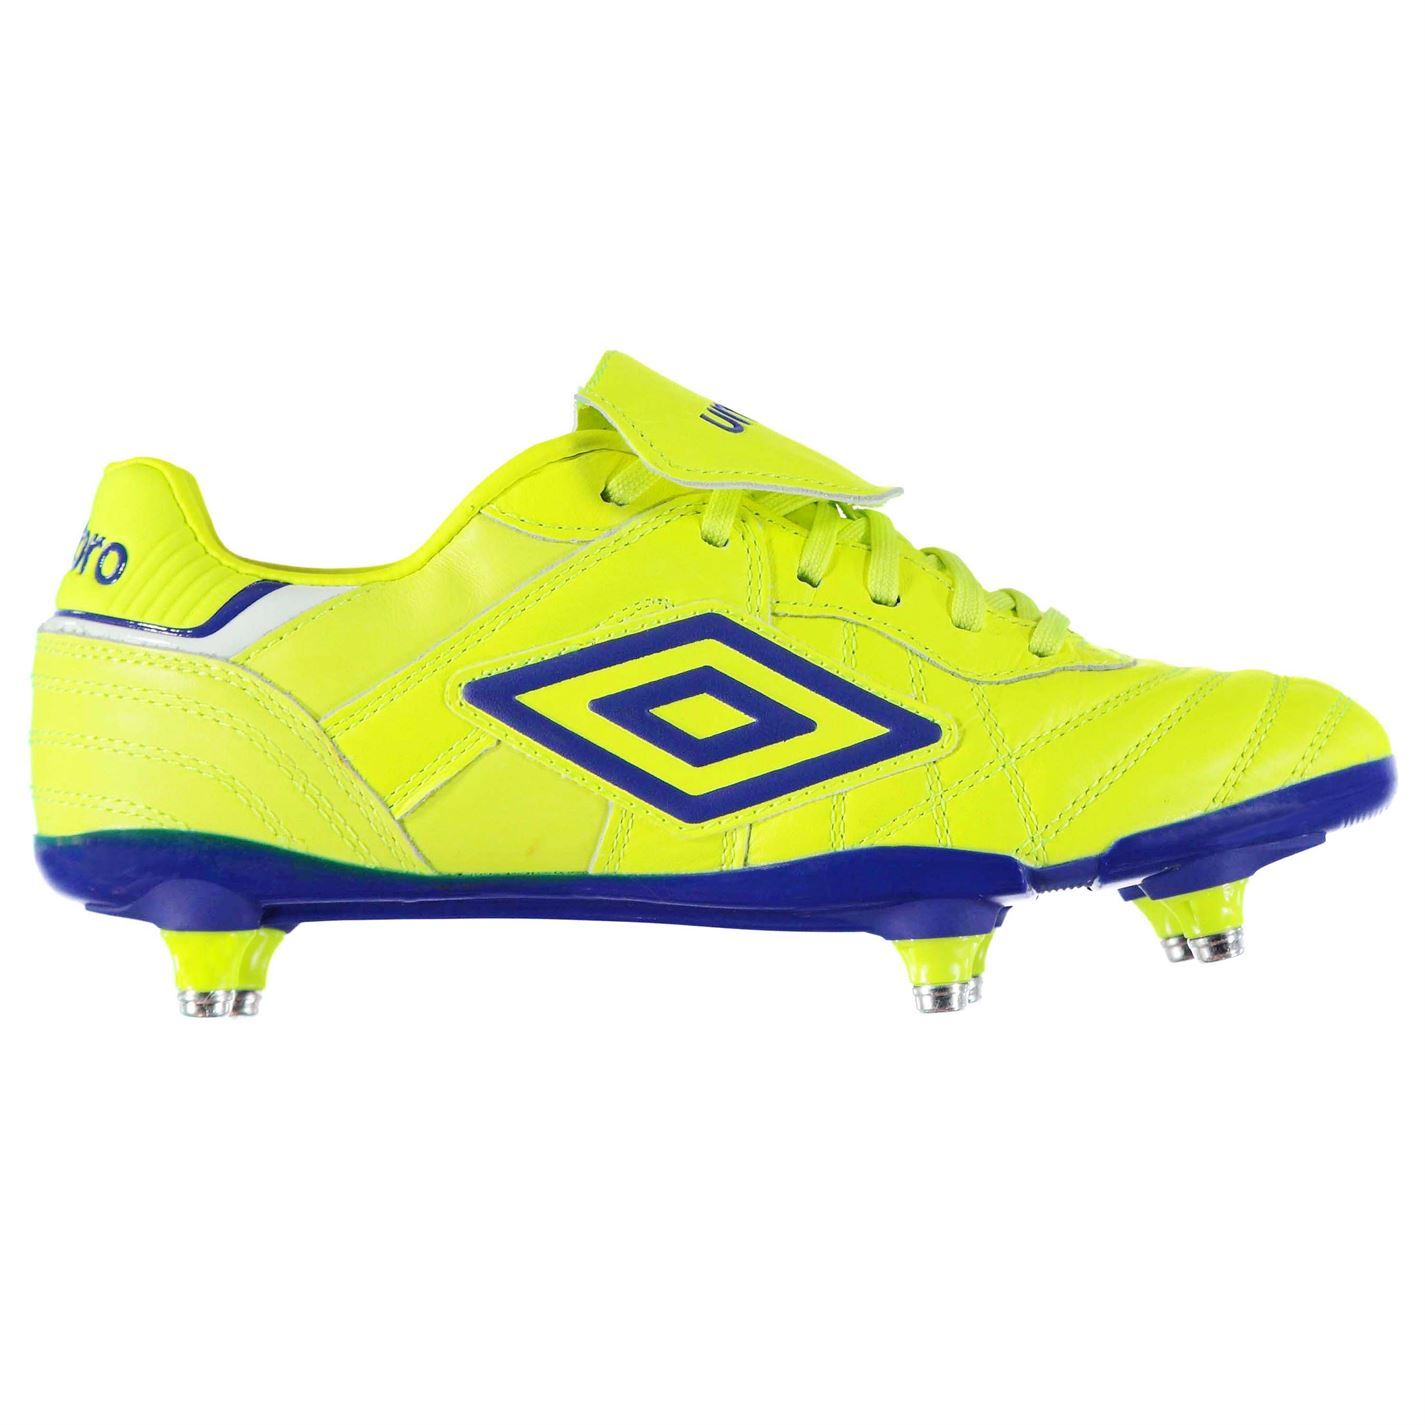 12f31be5b Details about Umbro Speciali Eternal Pro Soft Ground Football Boots Mens  Blue Soccer Cleats